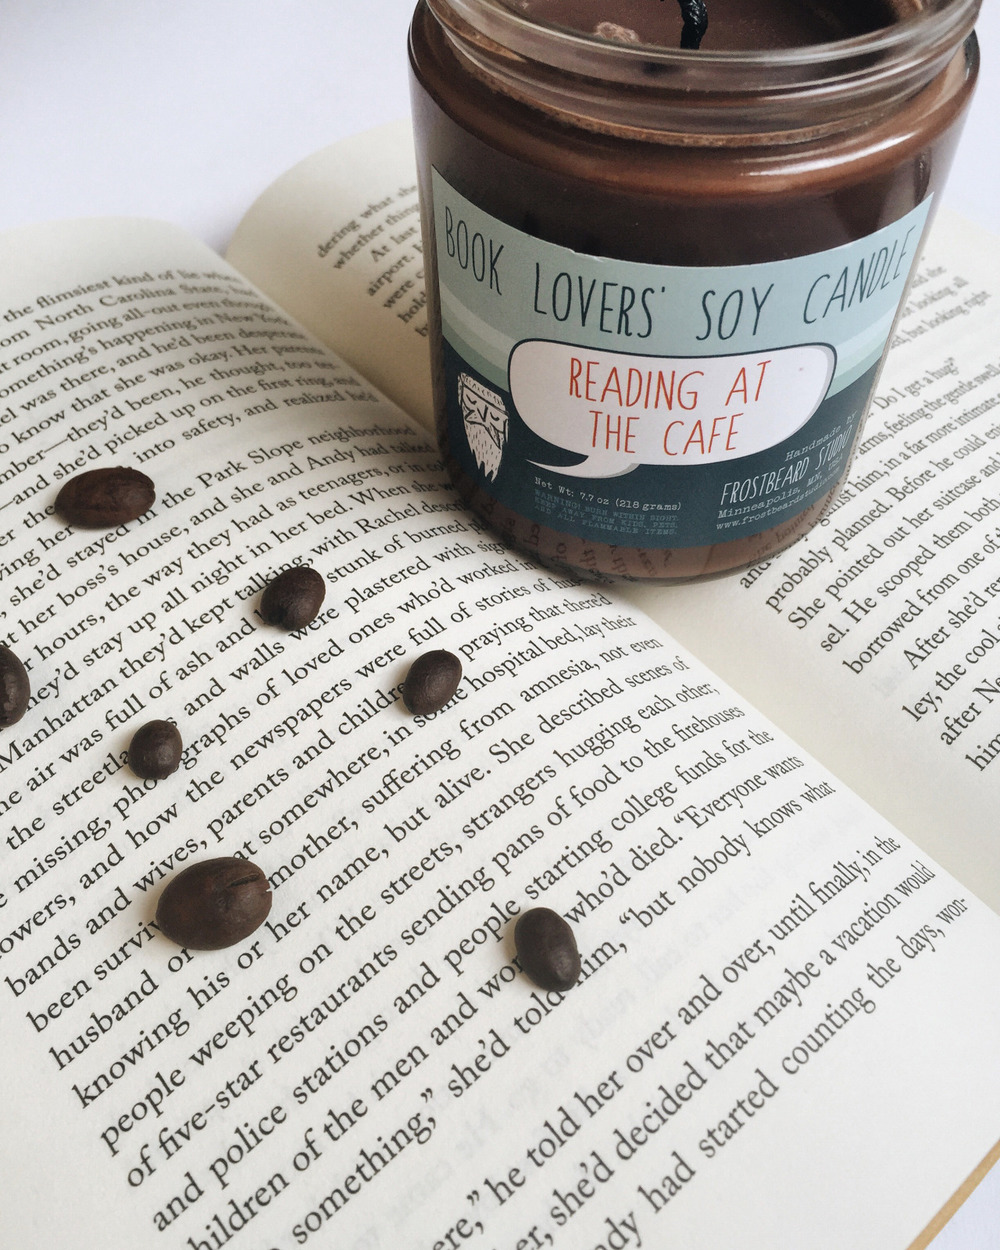 bookbaristas :     In LOVE with this scent! My room smells like a cafe mocha  ☕  👌    In addition to being obsessed with books and coffee, I have a real-life addiction to candles and  Frostbeard Studio  is going to ruin me for any other candles!     shop the scent  |  like this on bookstagram!        I'm thinking I definitely need one. One thing that will always bring me into a Barnes & Noble or any other bookstore that serves coffe with their books is the smell of new books and dark roast coffee. If I could capture a little of that at home…  A.M.